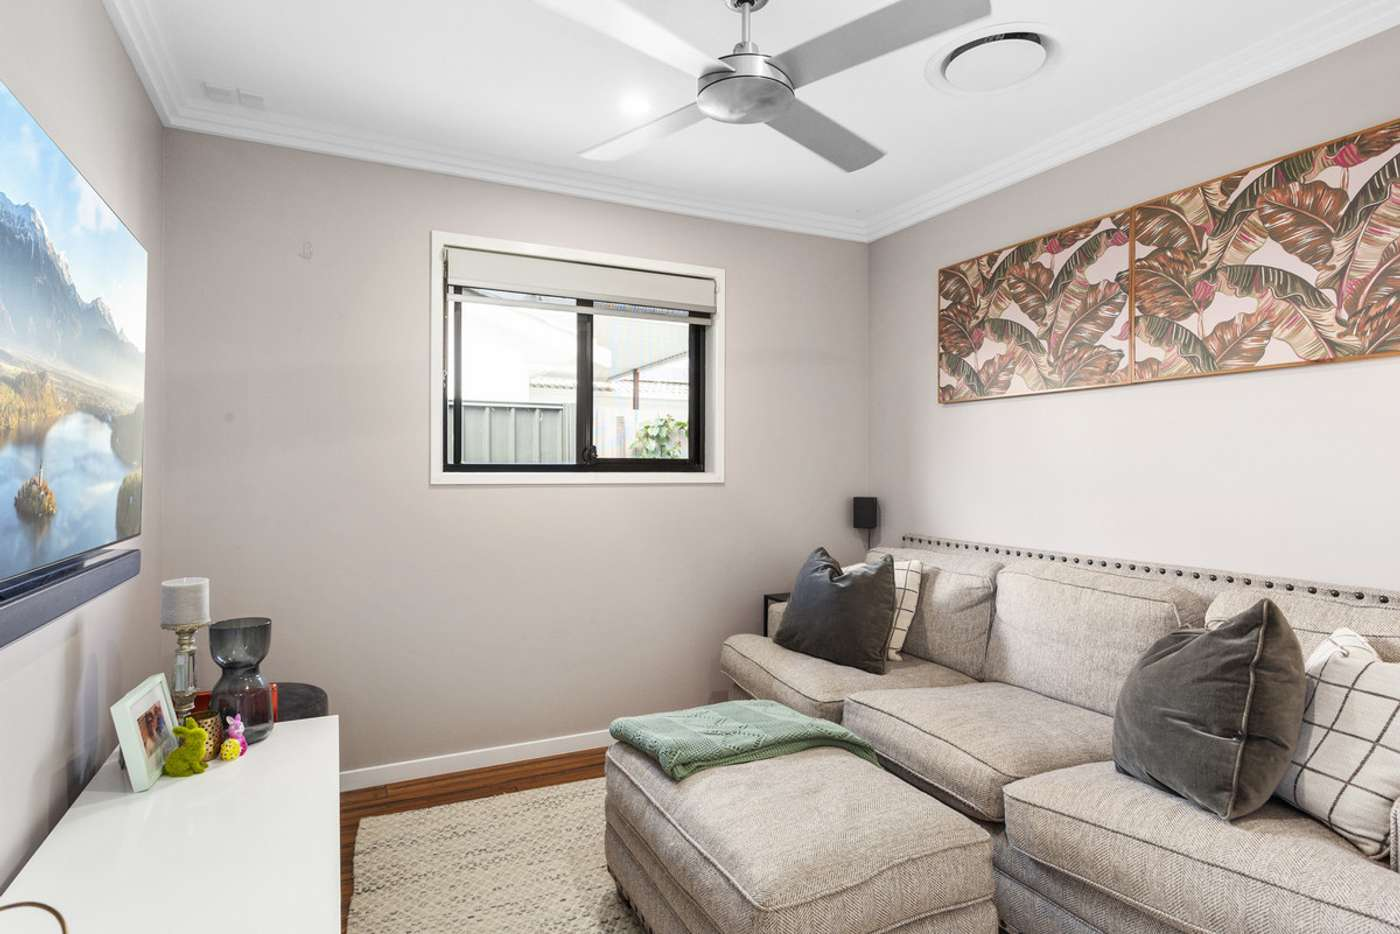 Fifth view of Homely house listing, 19 Clinton Avenue, Burleigh Waters QLD 4220